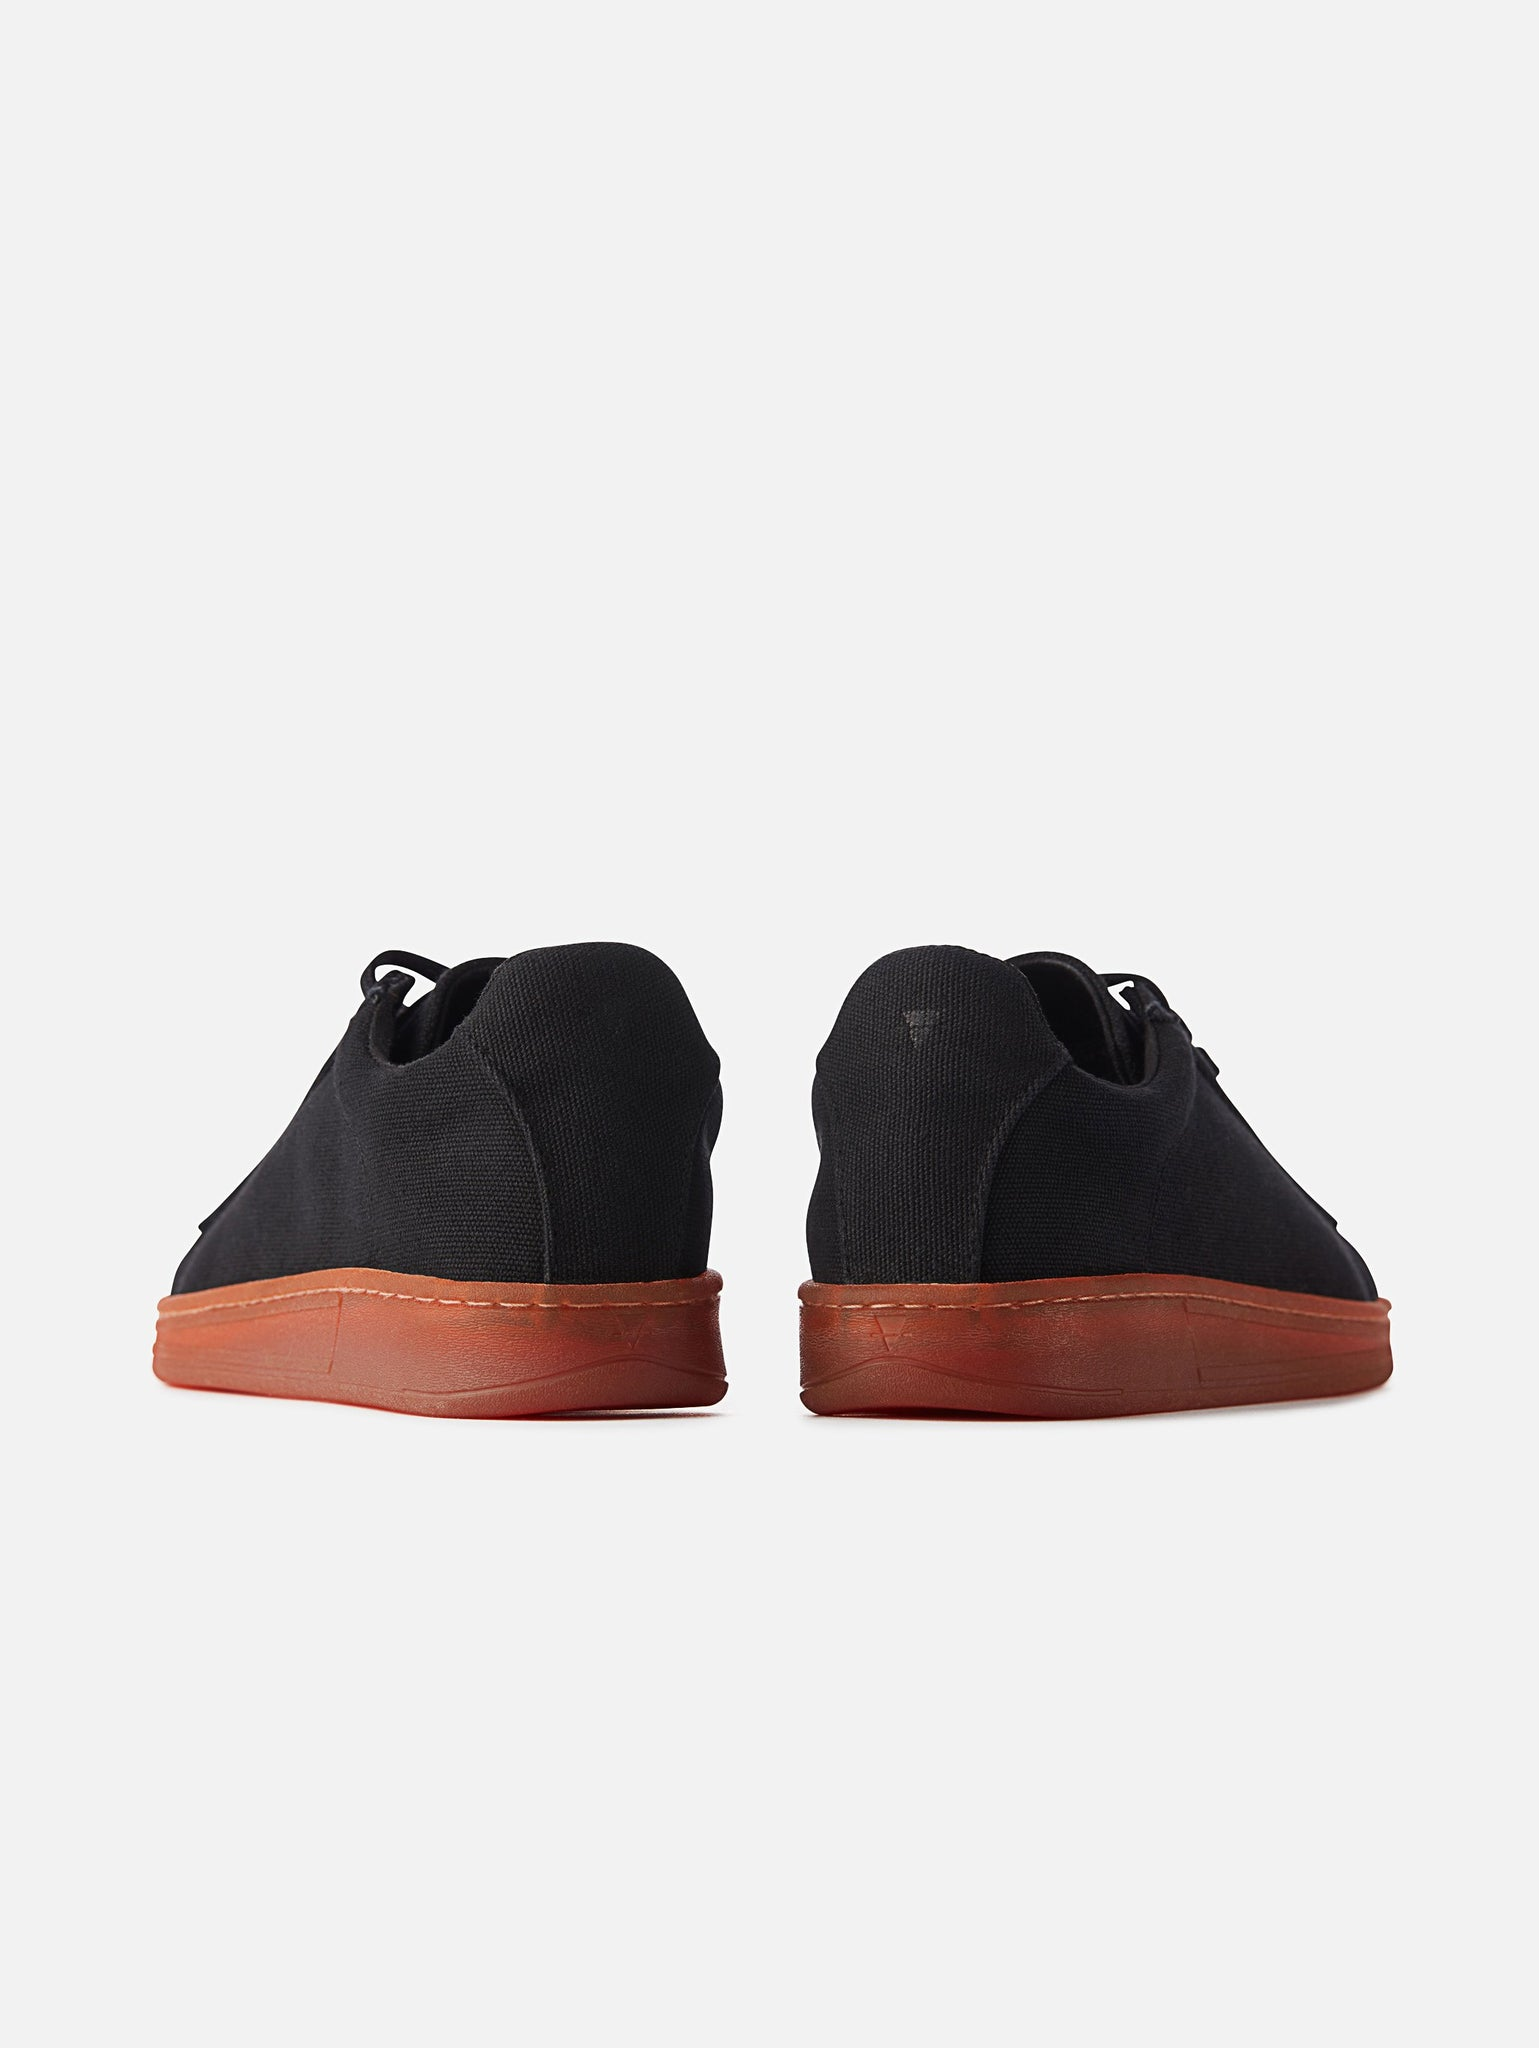 Hope - Vegan Black/Red Canvas Shoeproduct_vendor#product_type